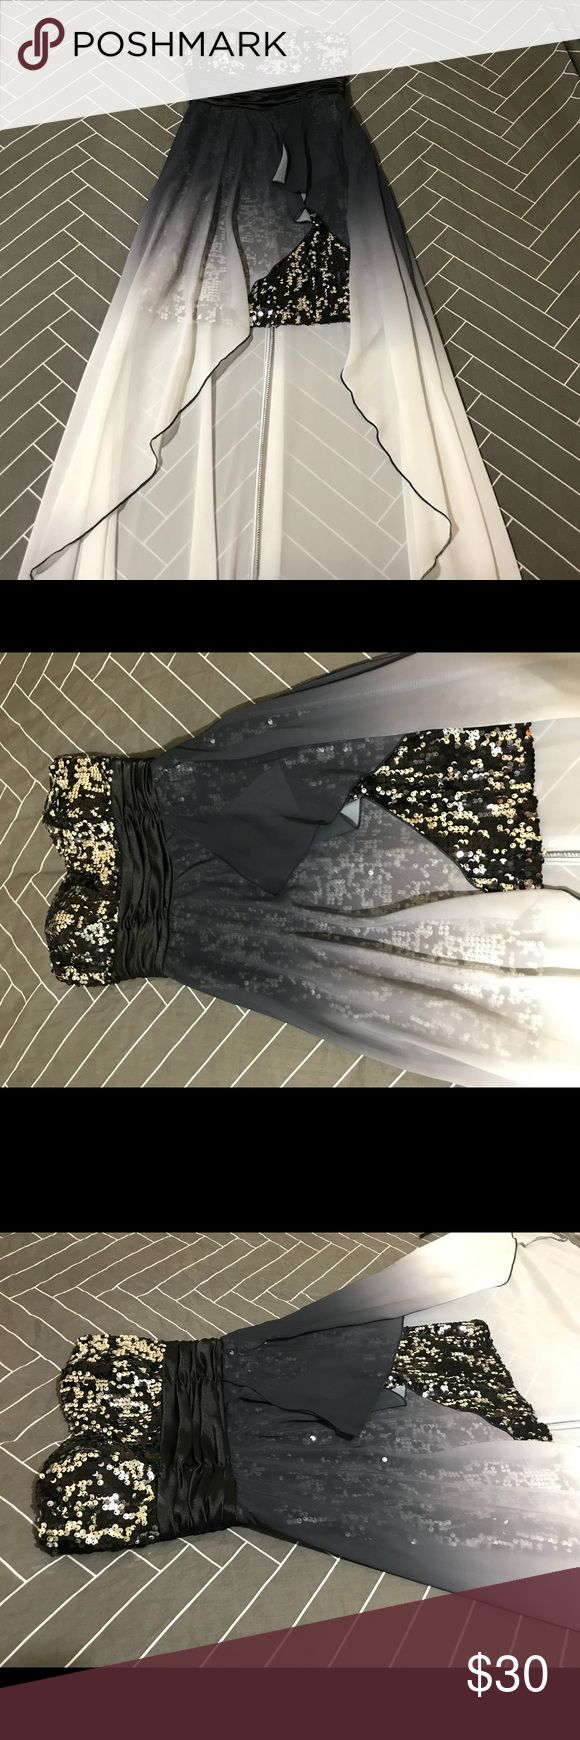 """Black and White Ombré High-Low Prom Dress Stunning strapless dress for prom or homecoming! The train has an ombré from black to white. I wore it once for senior prom with the black heels also in my closet!   Inside dress - 25.5"""" From top of dress to bottom of train - 46"""" Speechless Dresses Prom #blackhighheelsforhomecoming #promheelswhite #blackhighheelsforprom"""